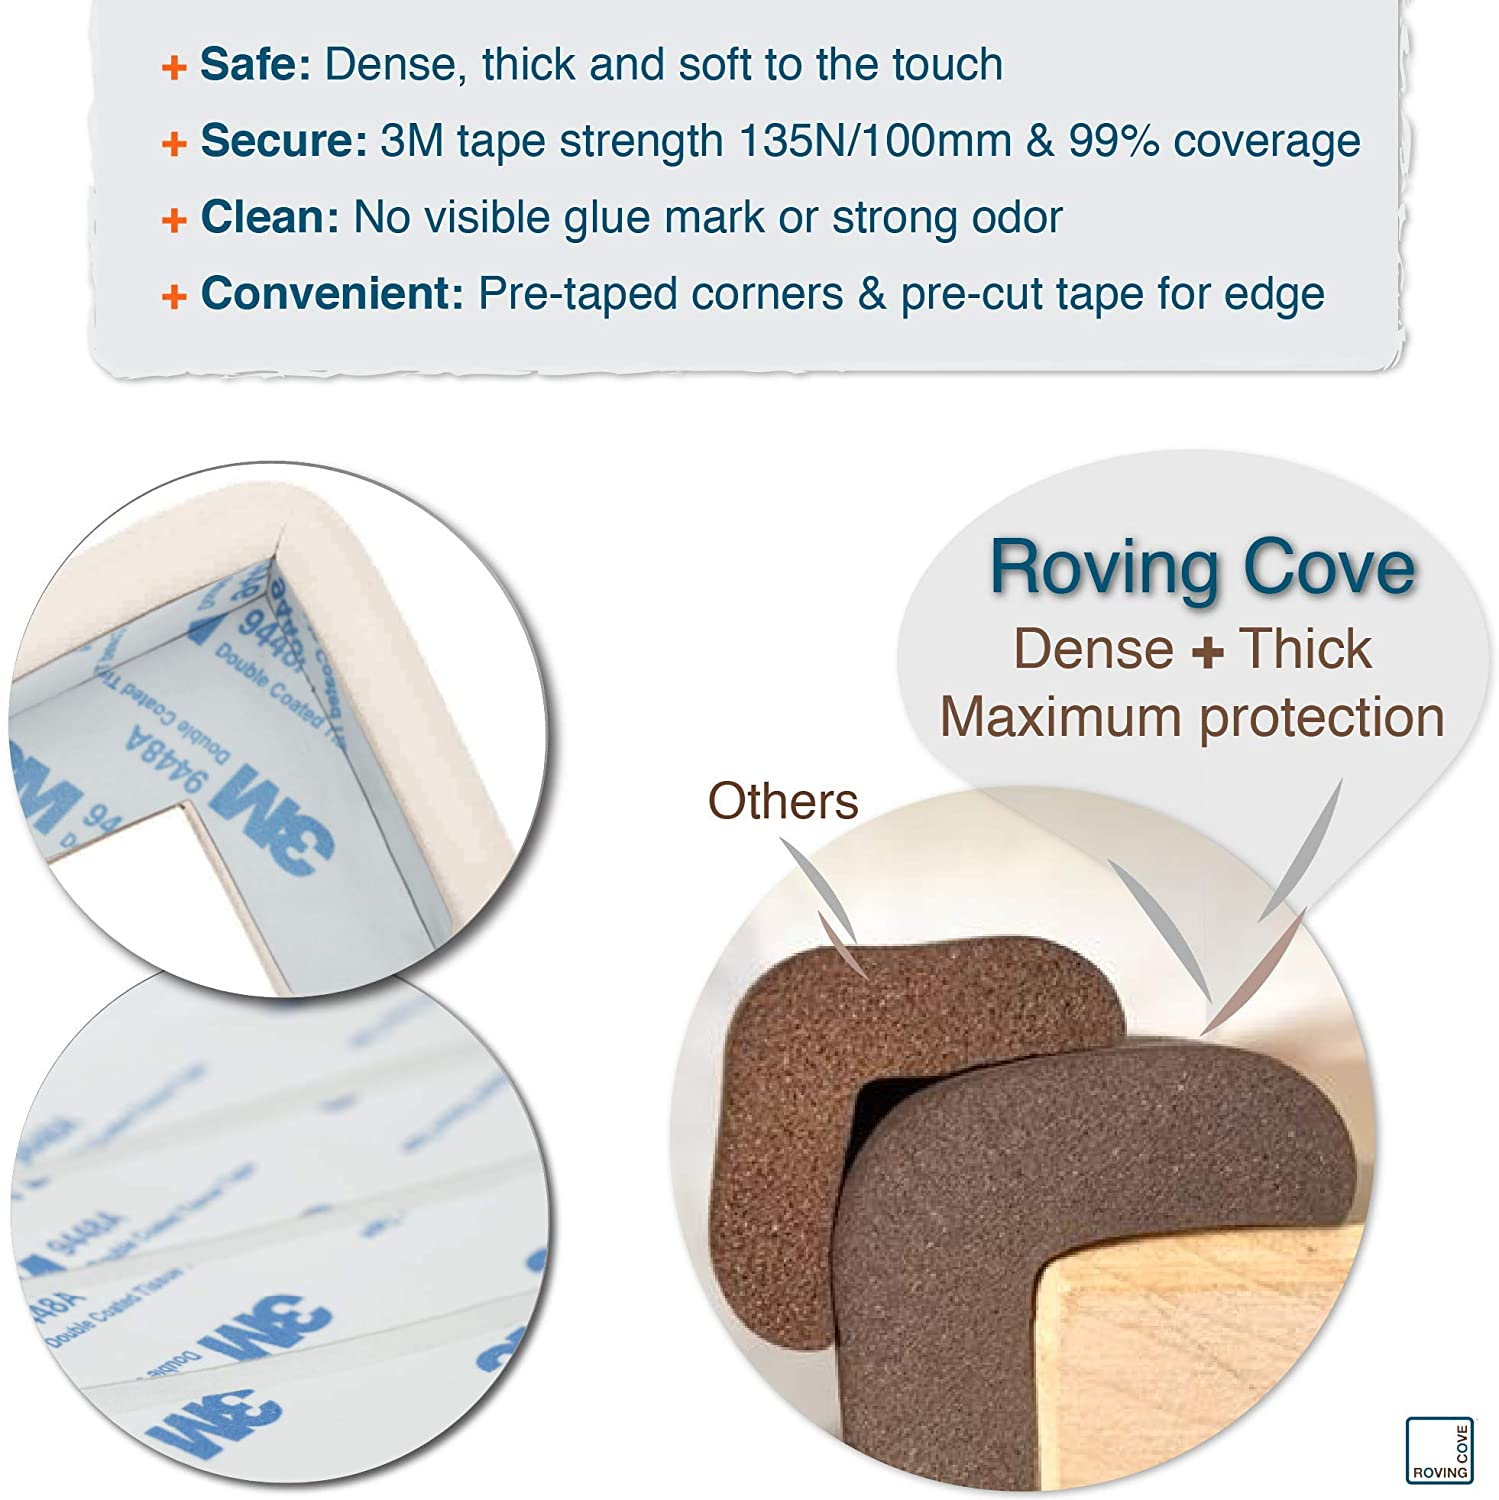 ONYX; Premium Childproofing Edge Corner Guard Safe Edge/® and Corner Cushion 18ft Edge + 8 Corners JUMBO PACK Roving Cove/® 20.4 ft PRE-TAPED CORNERS; Child Safety Home Safety Furniture Bumper and Table Edge Corner Protectors